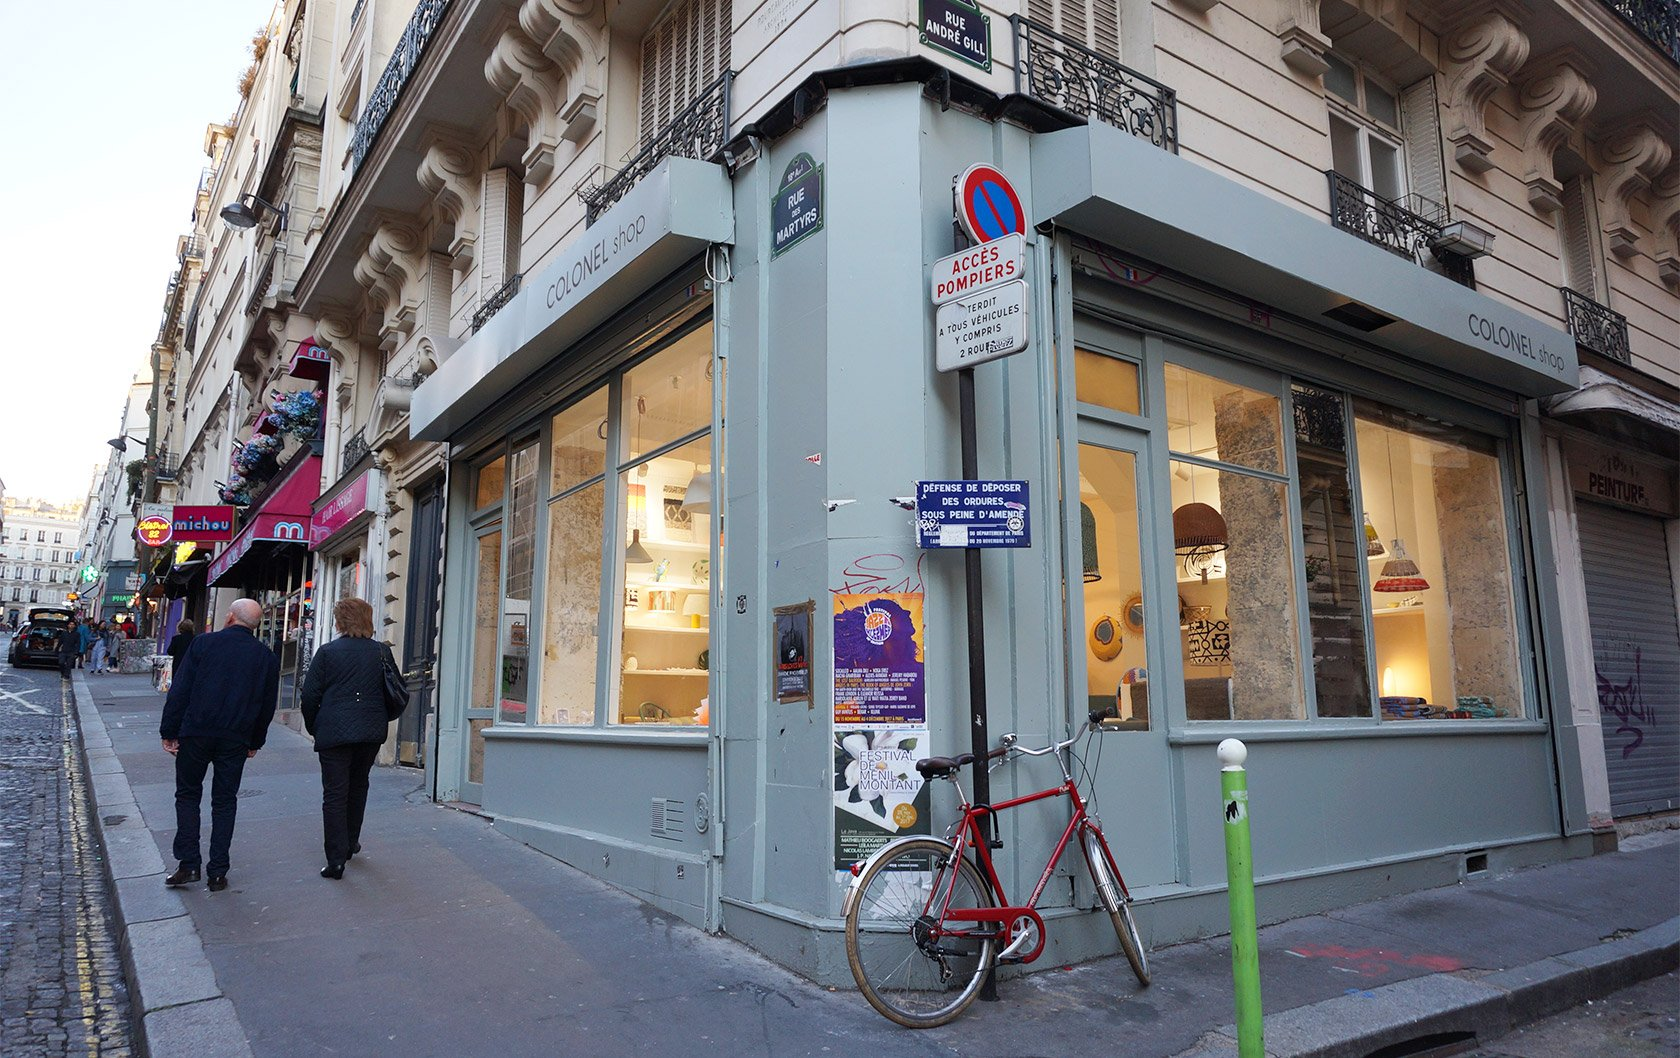 EG-rue-des-martyrs-colonel-shopping-paris-1